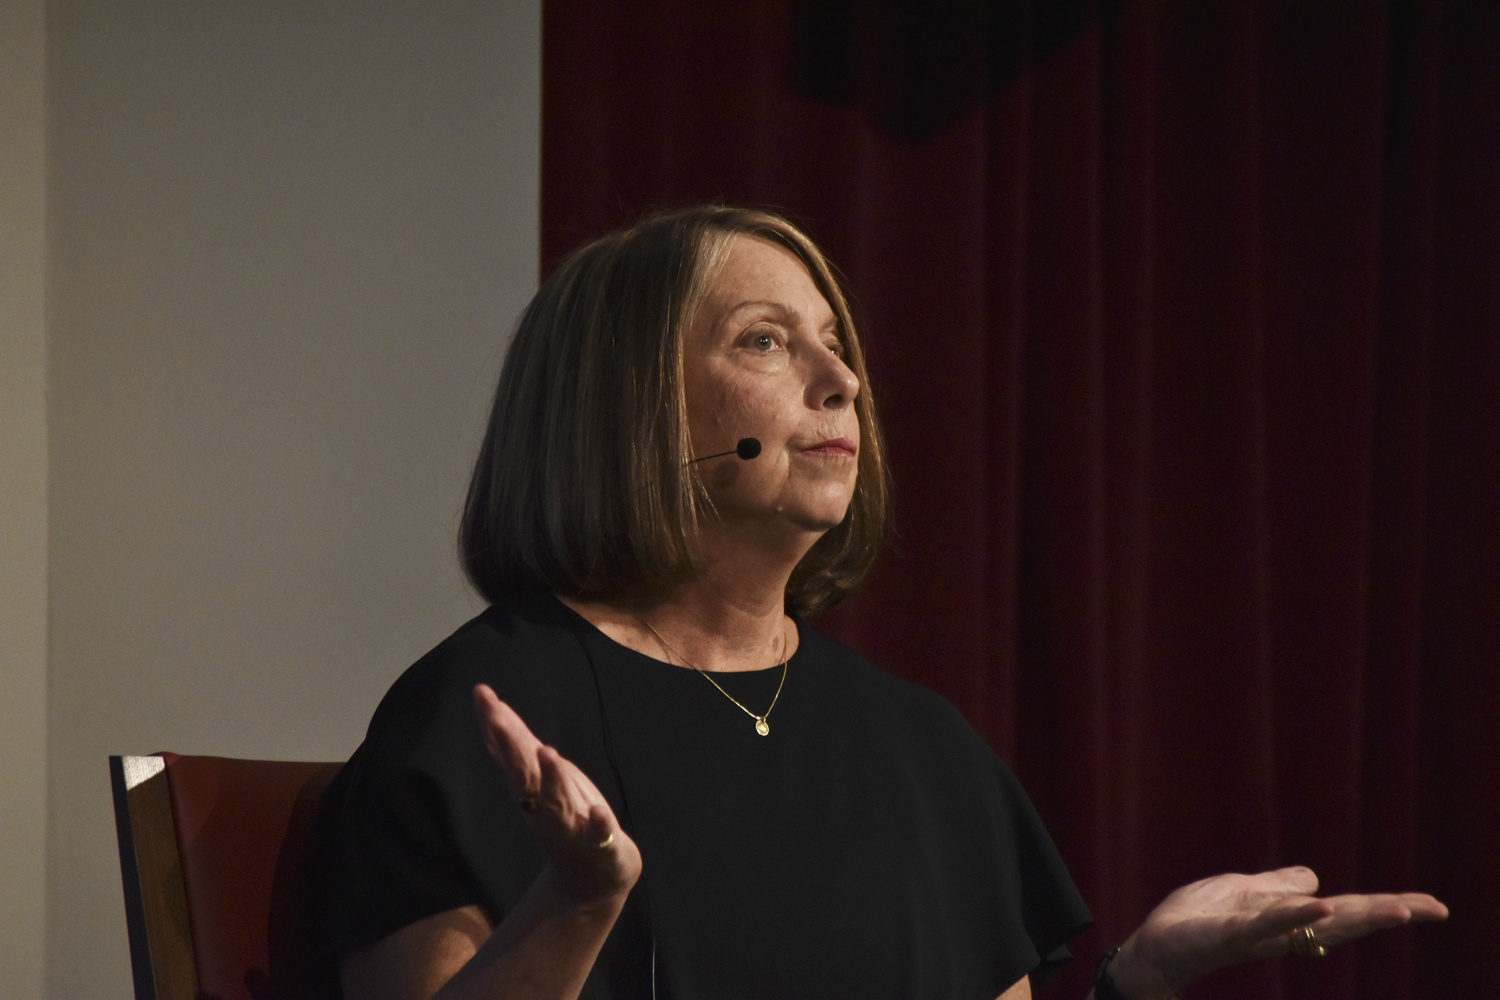 Jill E. Abramson spoke about the impact of the press on the political world at the Institute of Politics in Oct. 2018.